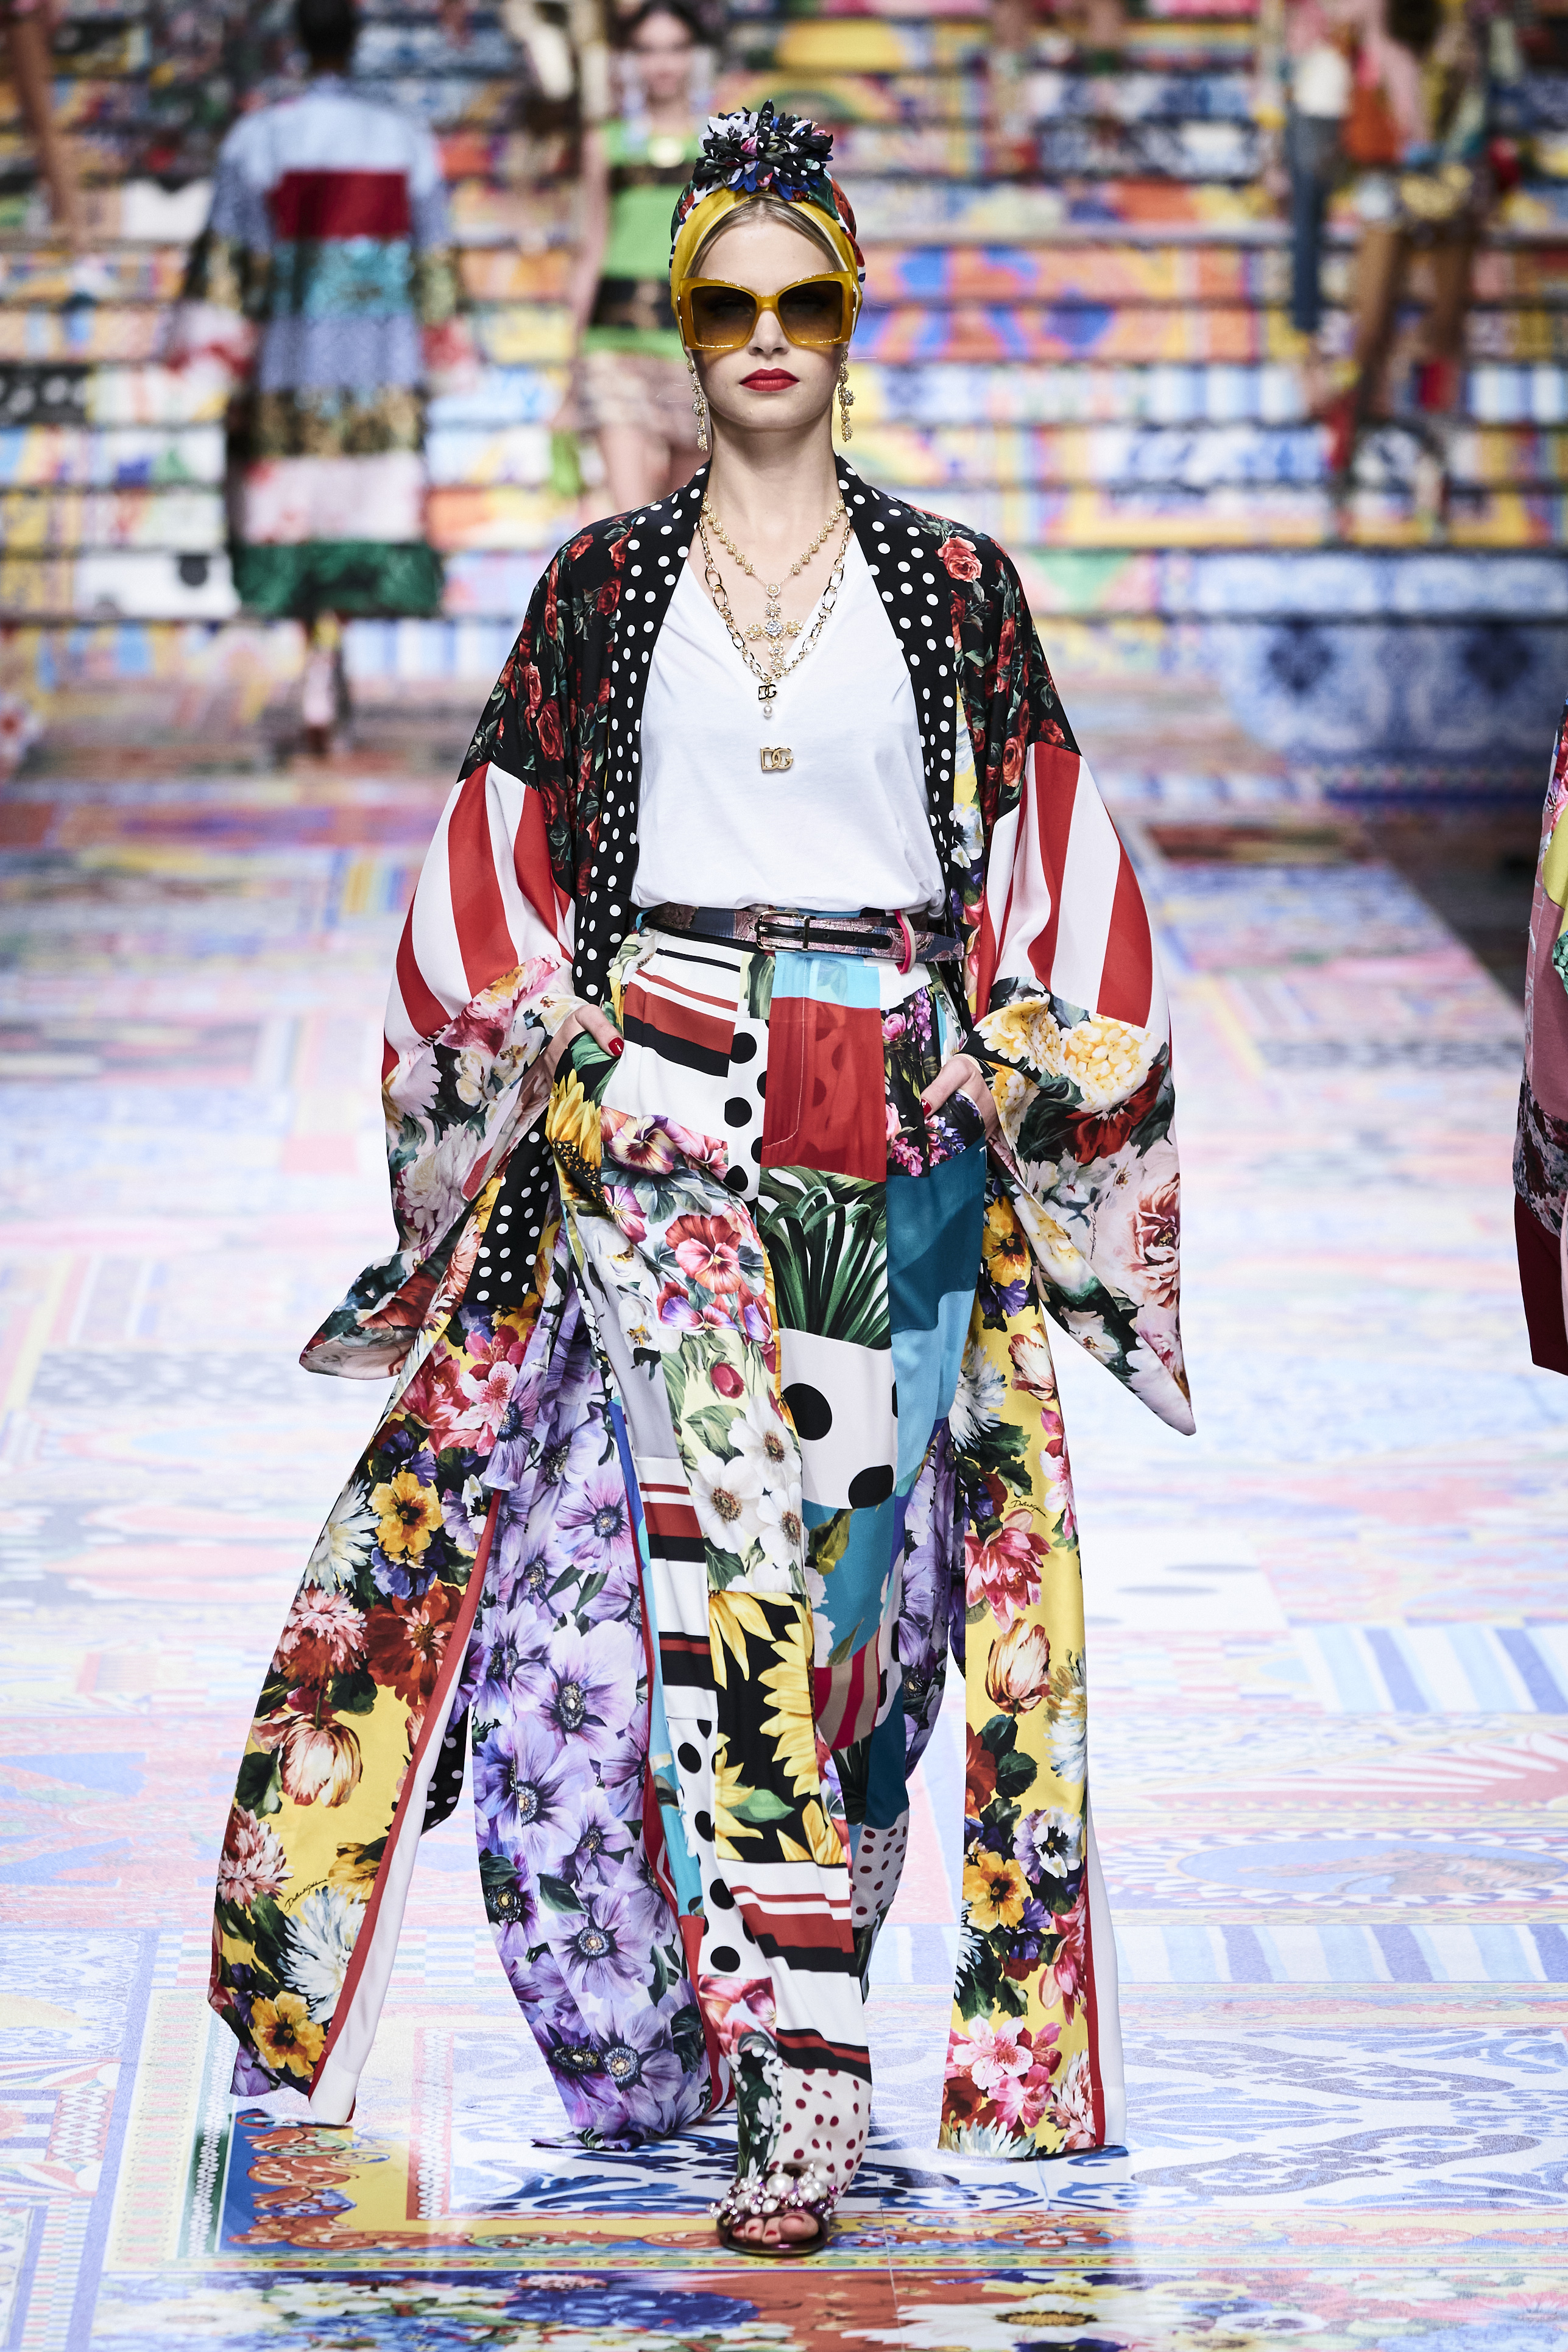 Prints galore: Dolce & Gabbana and Versace's Spring/Summer '21 collection (фото 11)